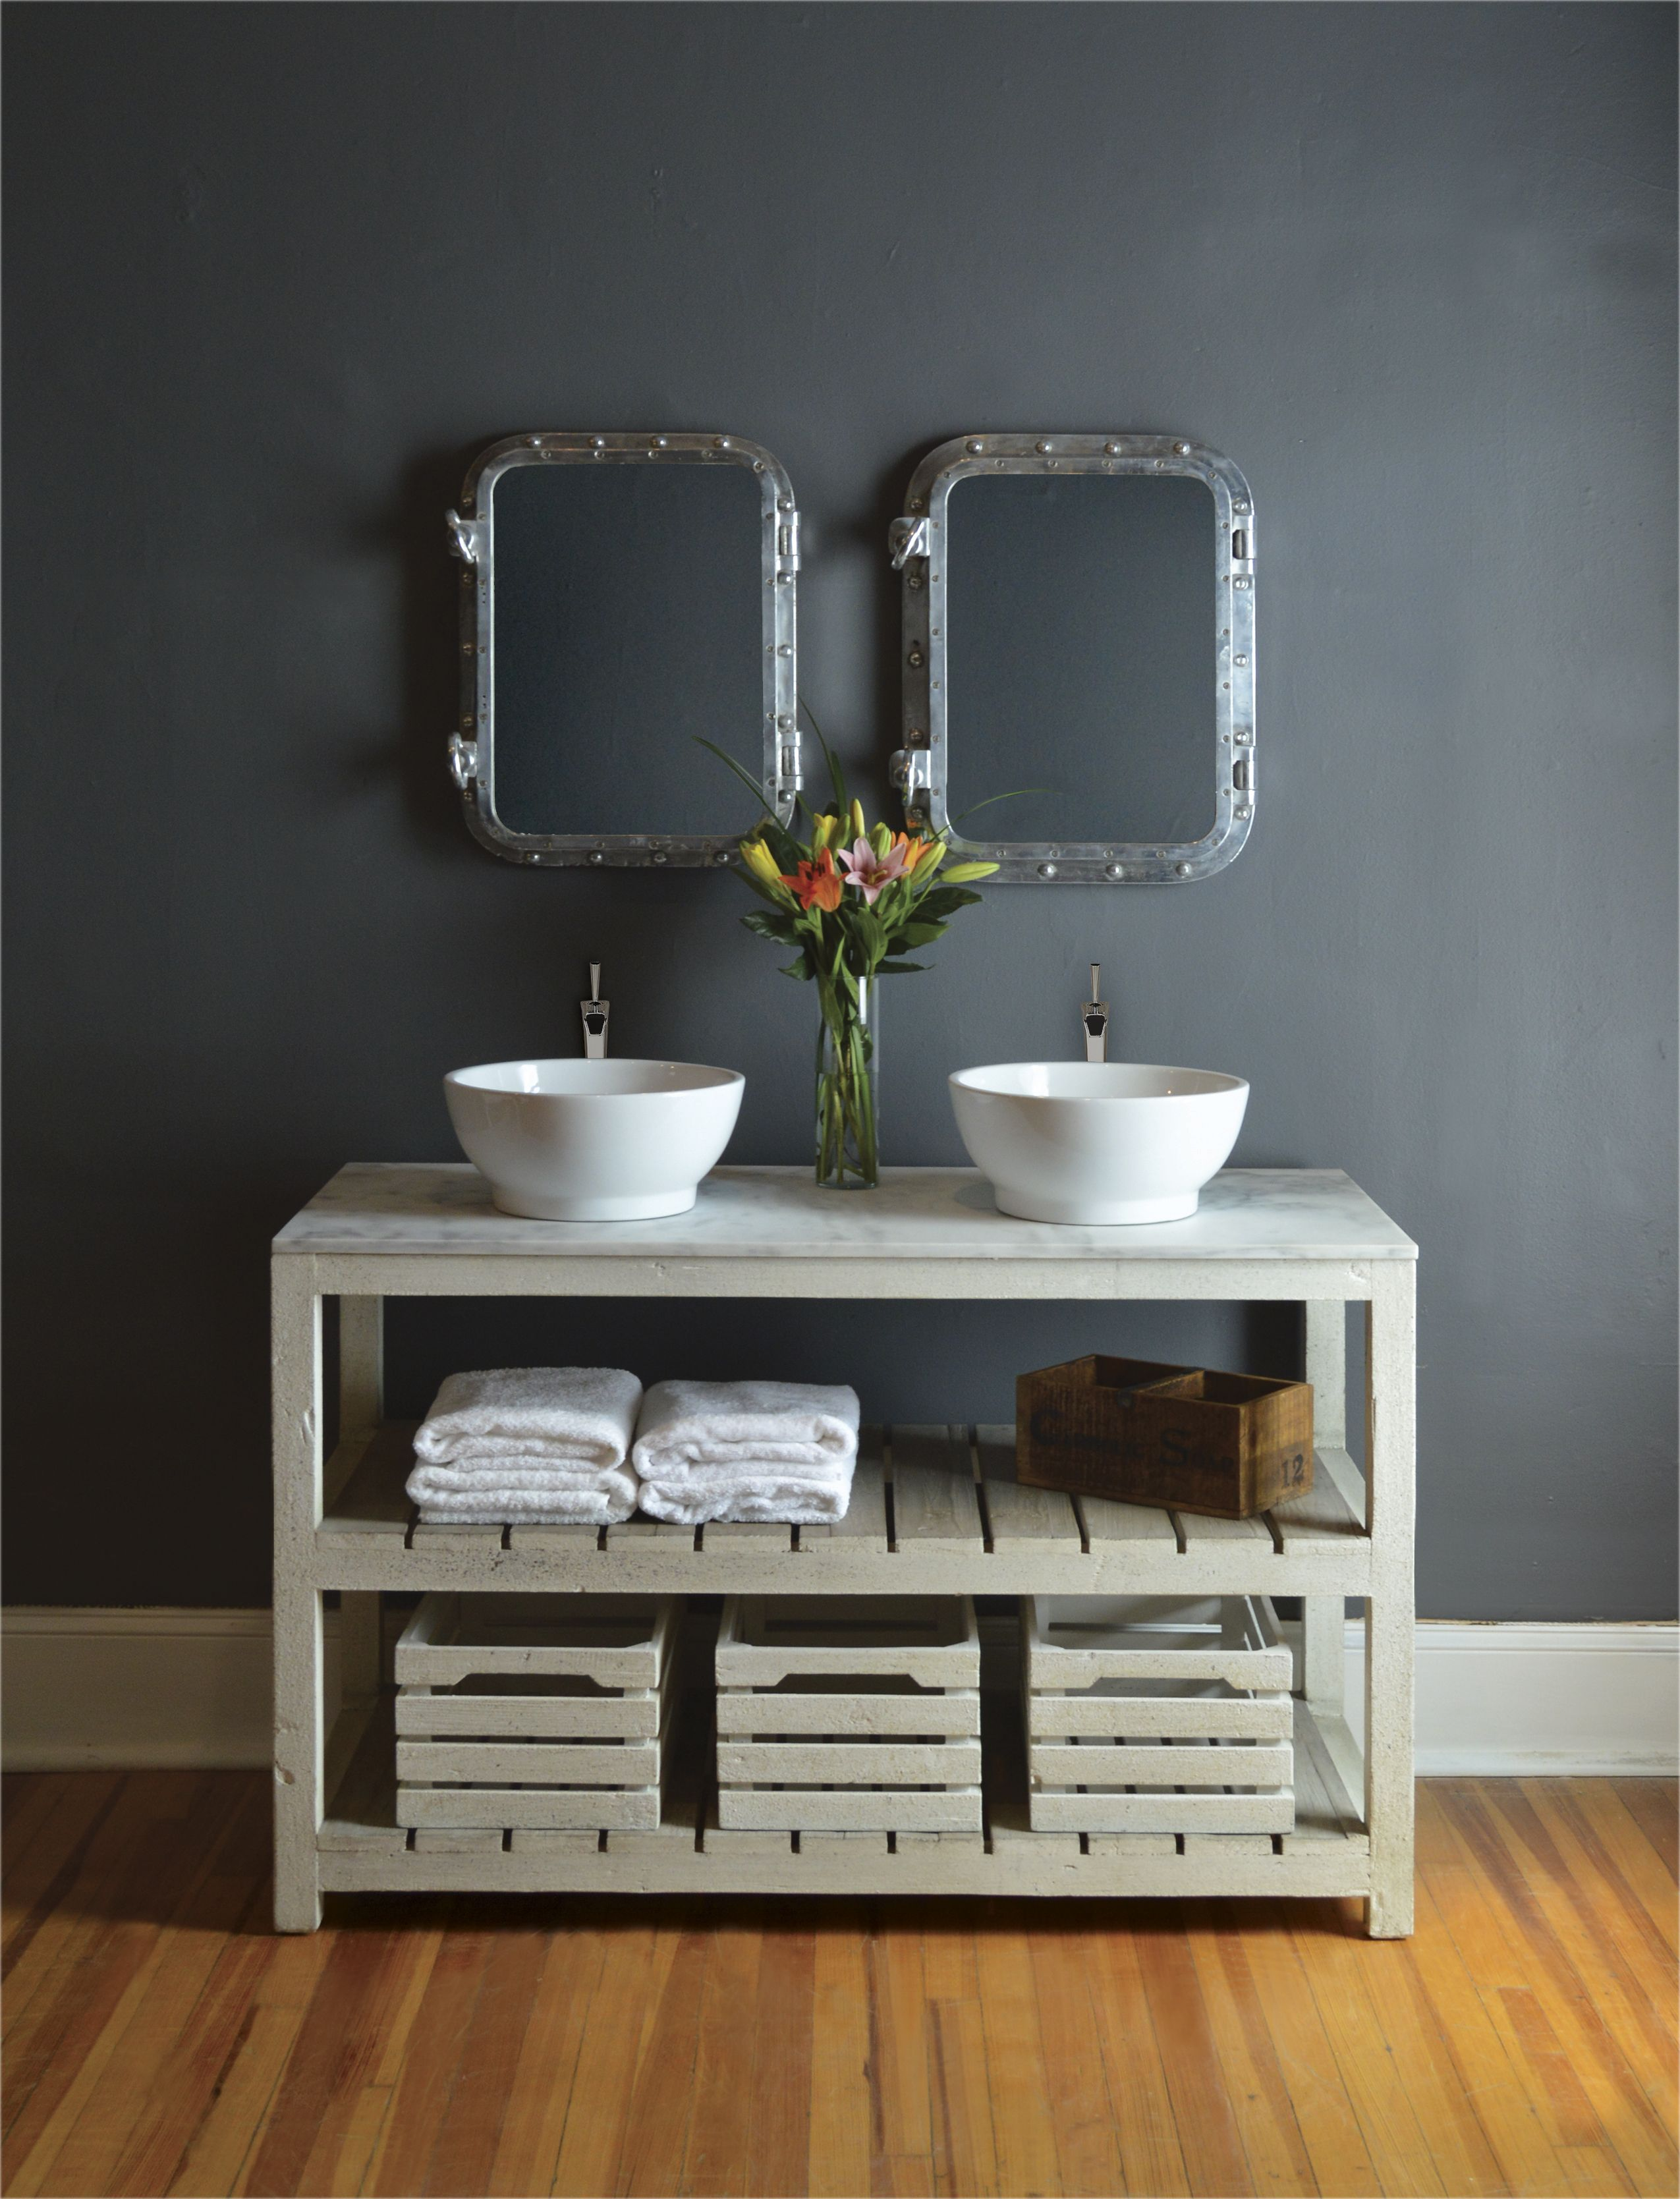 Antique white slatted vanity with carrara marble top and